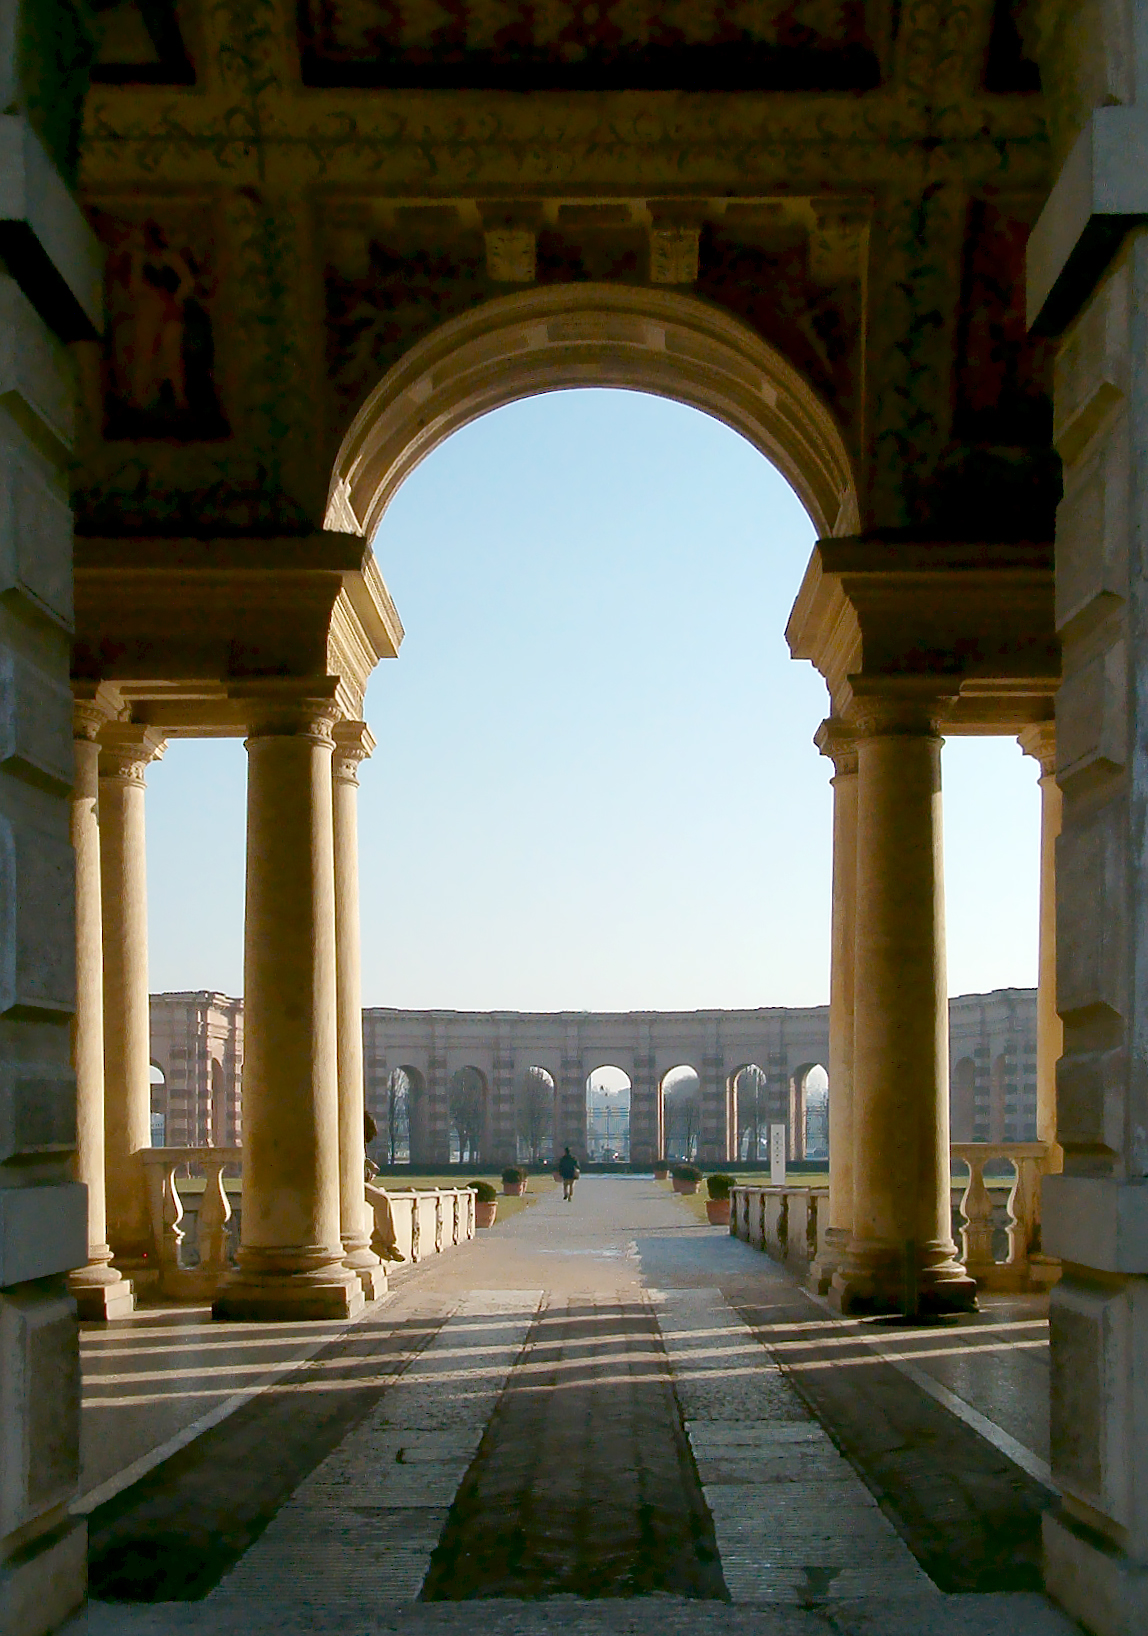 https://upload.wikimedia.org/wikipedia/commons/8/86/Palazzo_Te_Mantova_2.jpg